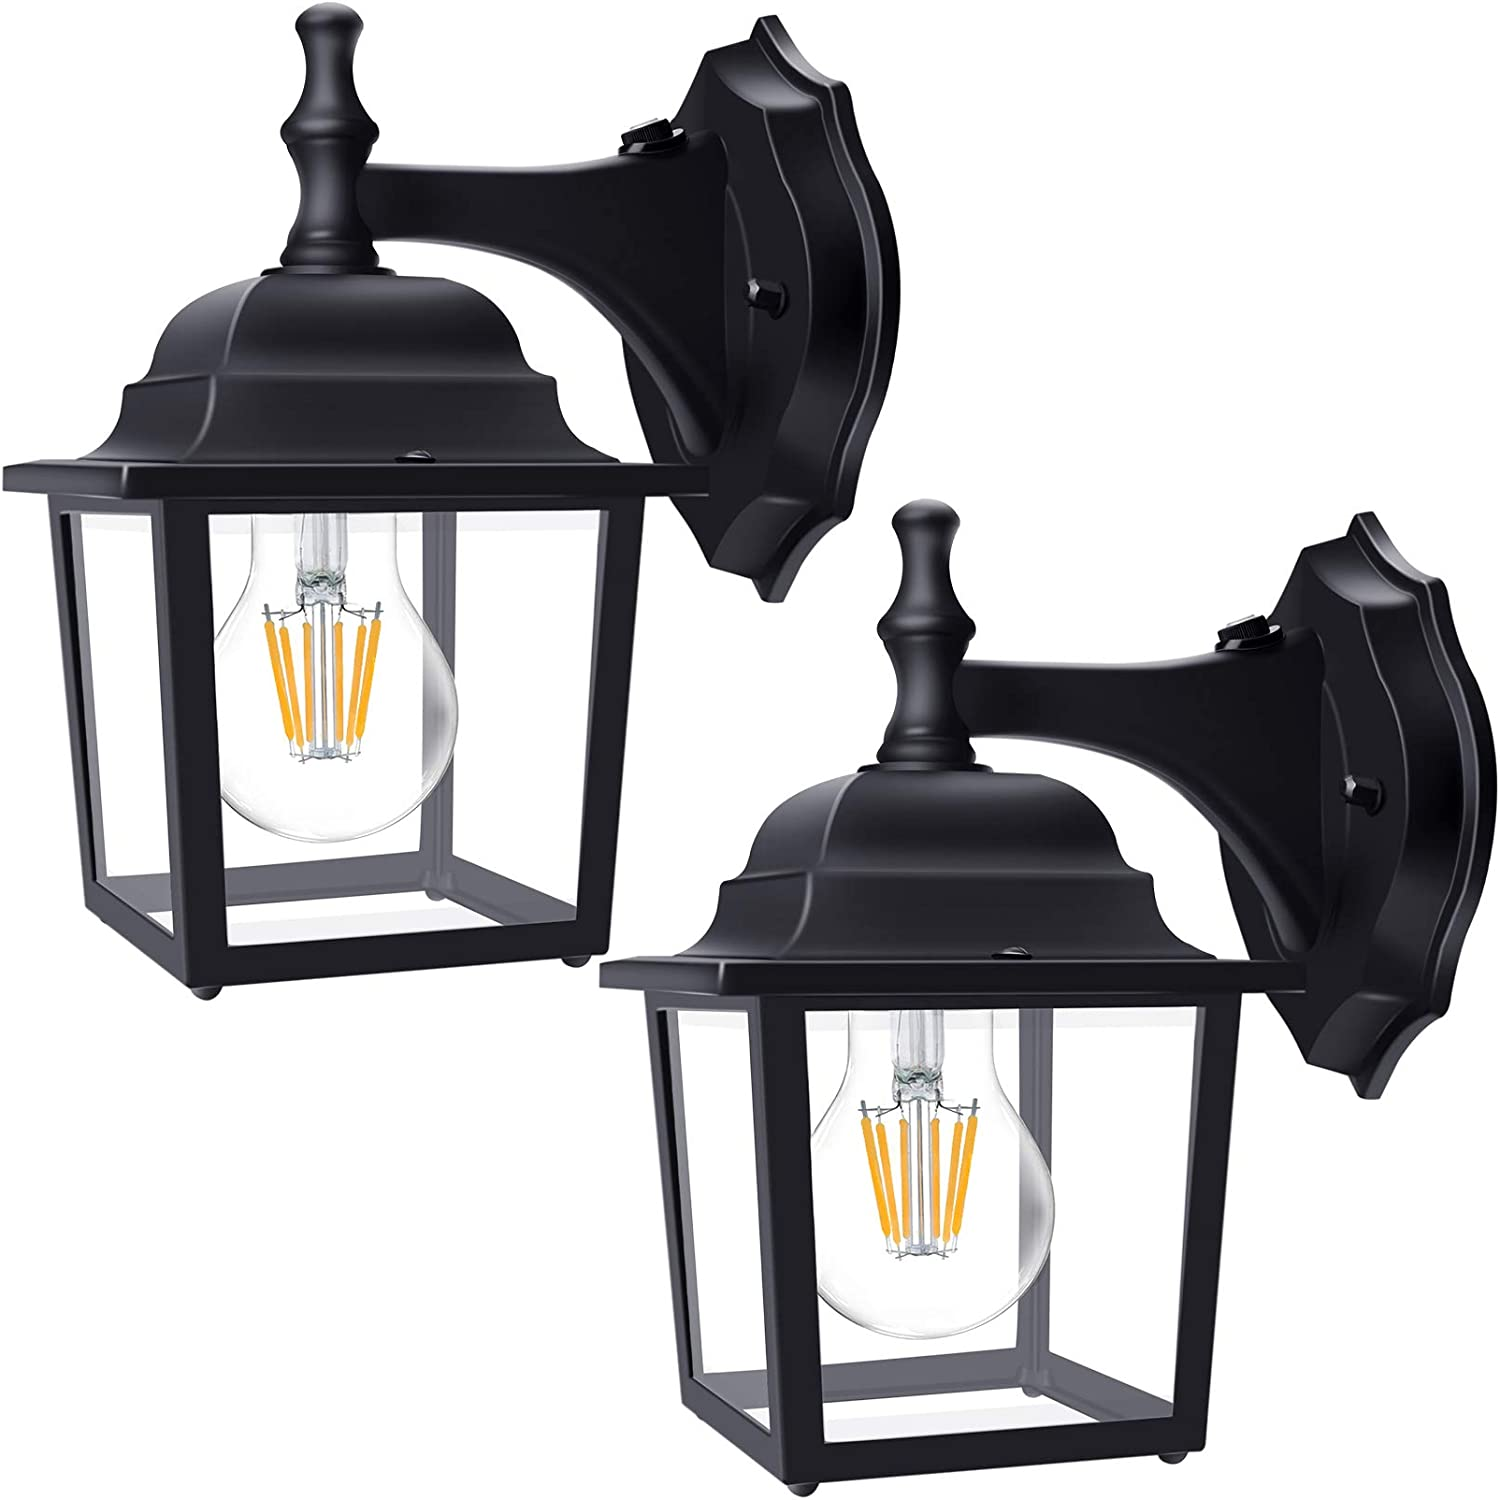 2-Pack Dusk to Dawn Sensor Outdoor Wall Lights Mount, Lamomo Wall Sconce Porch Light Fixture with E26 Led Light Bulb, UL Listed Anti-Rust Waterproof Black Wall Mount Lamp for Garage,Court-Yard